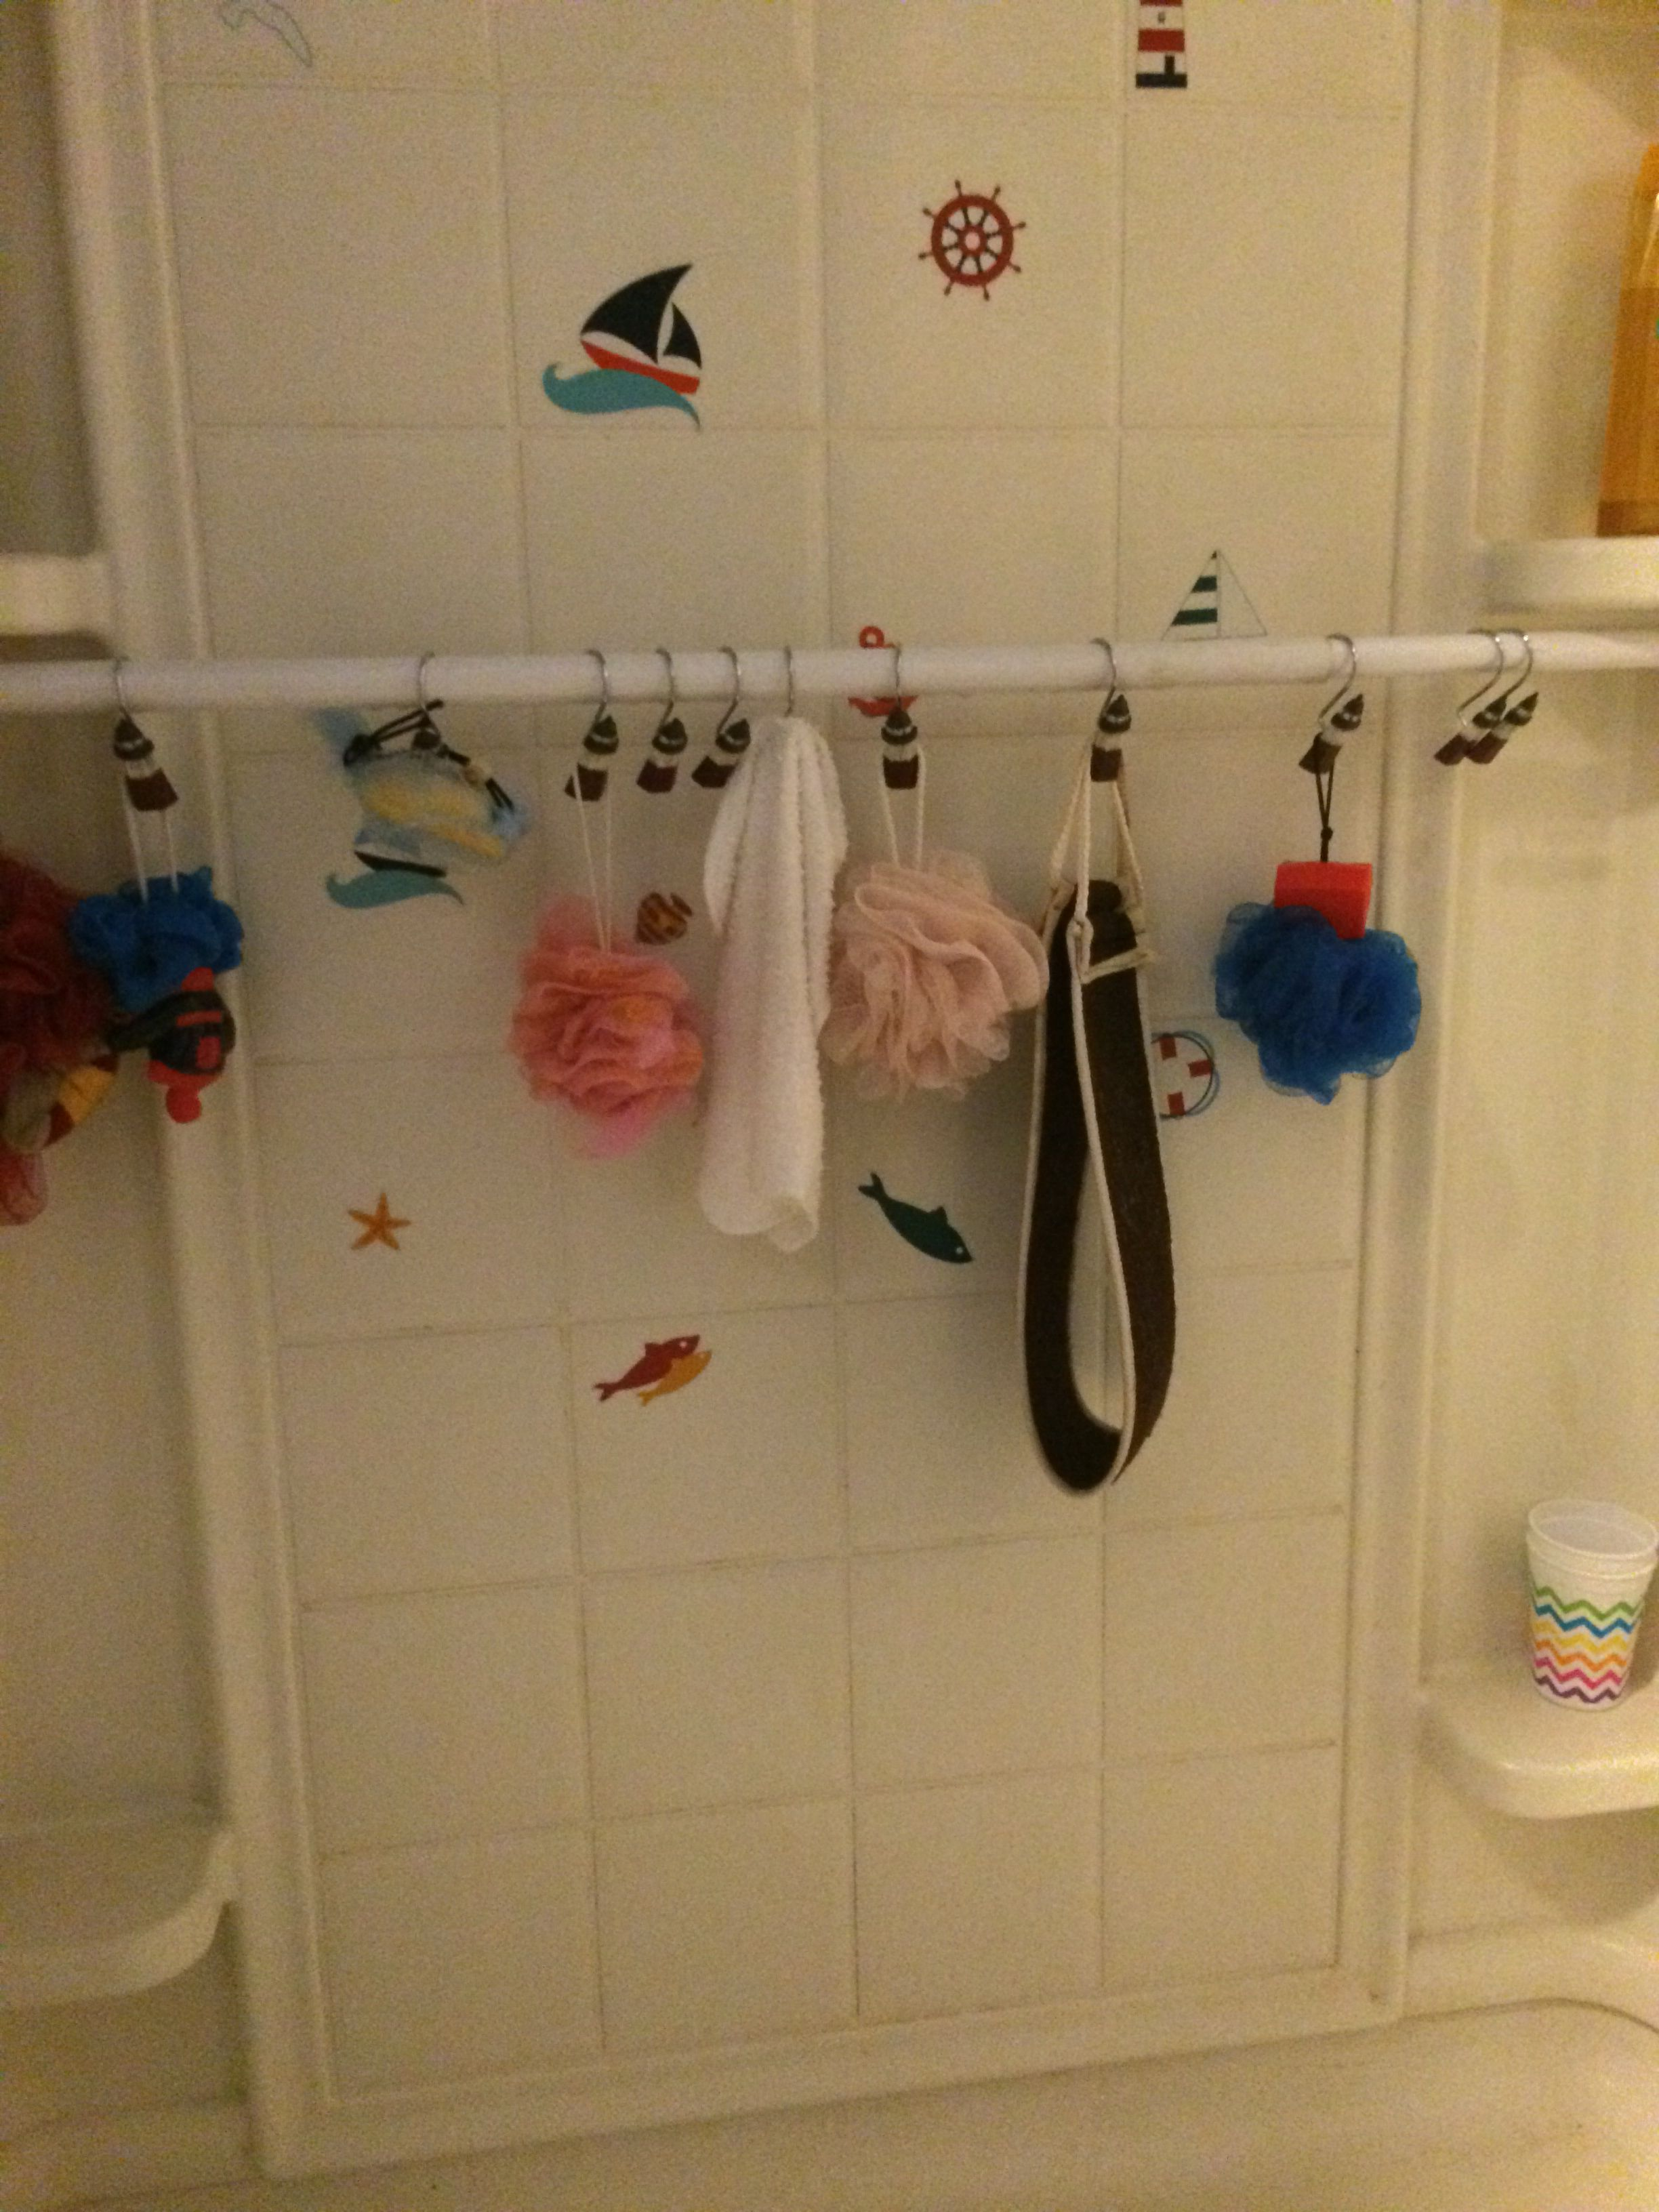 How To Repurpose A Shower Rod And Organize The Shower With